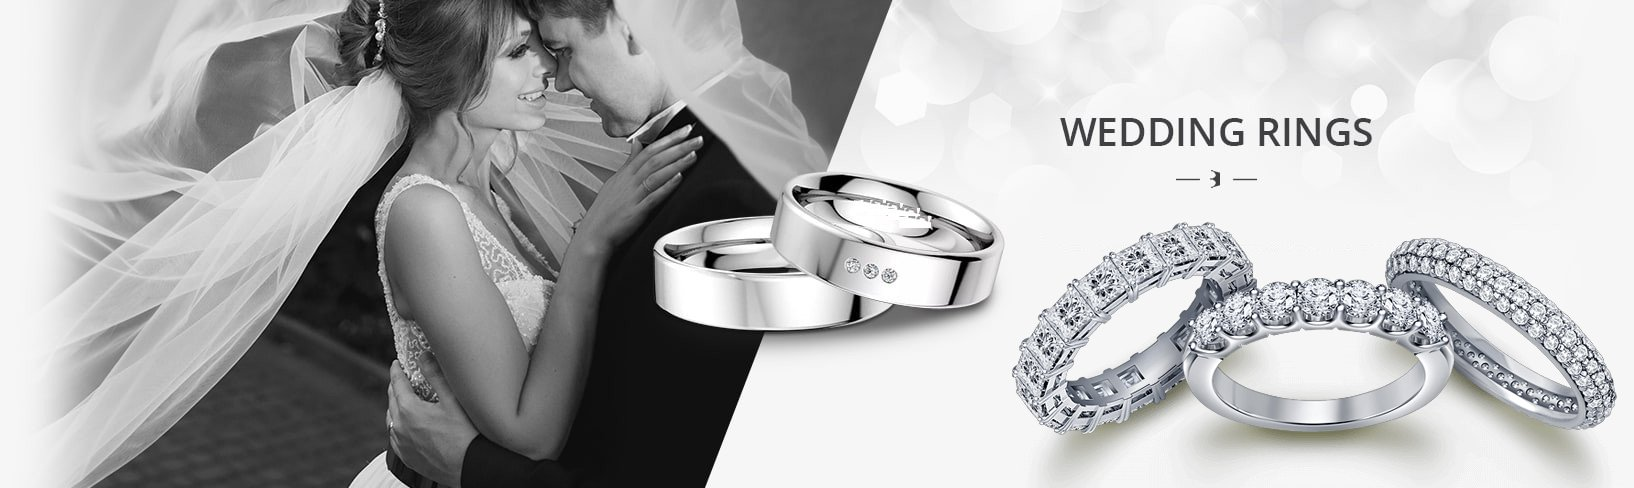 Picking the Optimum Wedding Rings Miami